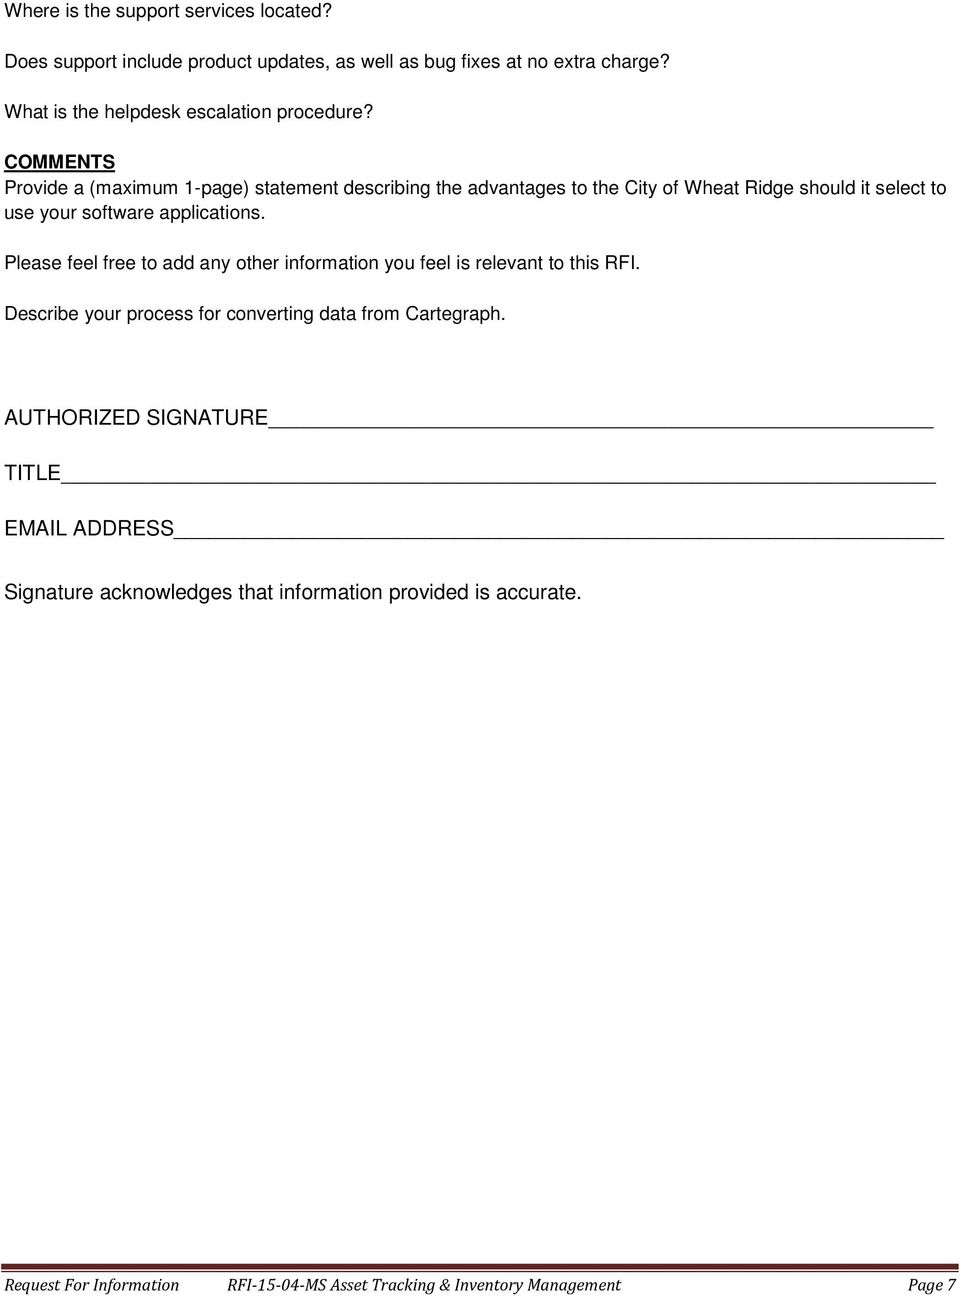 COMMENTS Provide a (maximum 1-page) statement describing the advantages to the City of Wheat Ridge should it select to use your software applications.